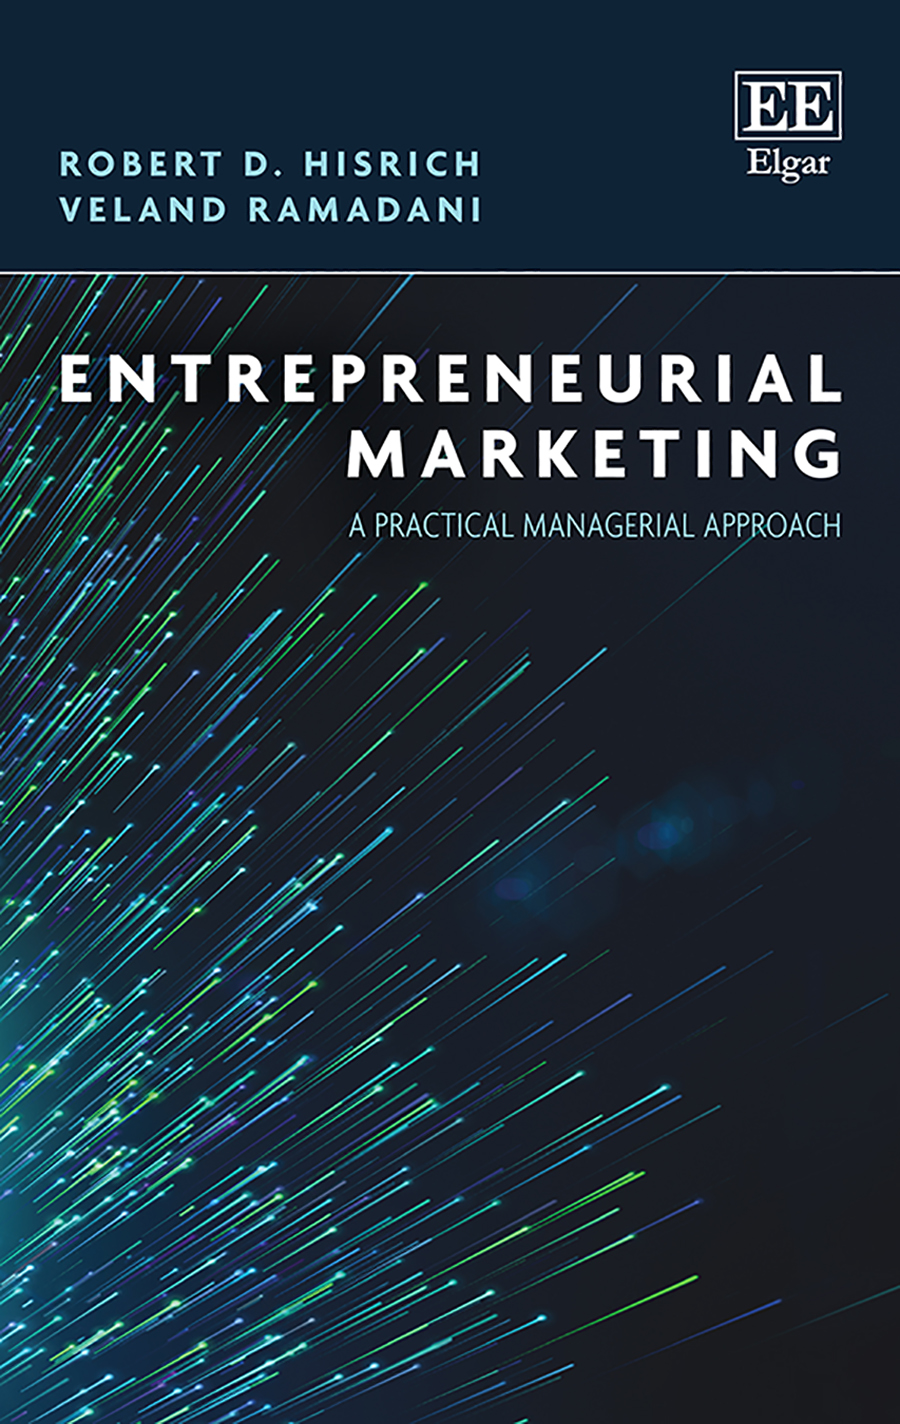 Download Ebook Advanced Introduction to Entrepreneurship by R. D. Hisrich Pdf